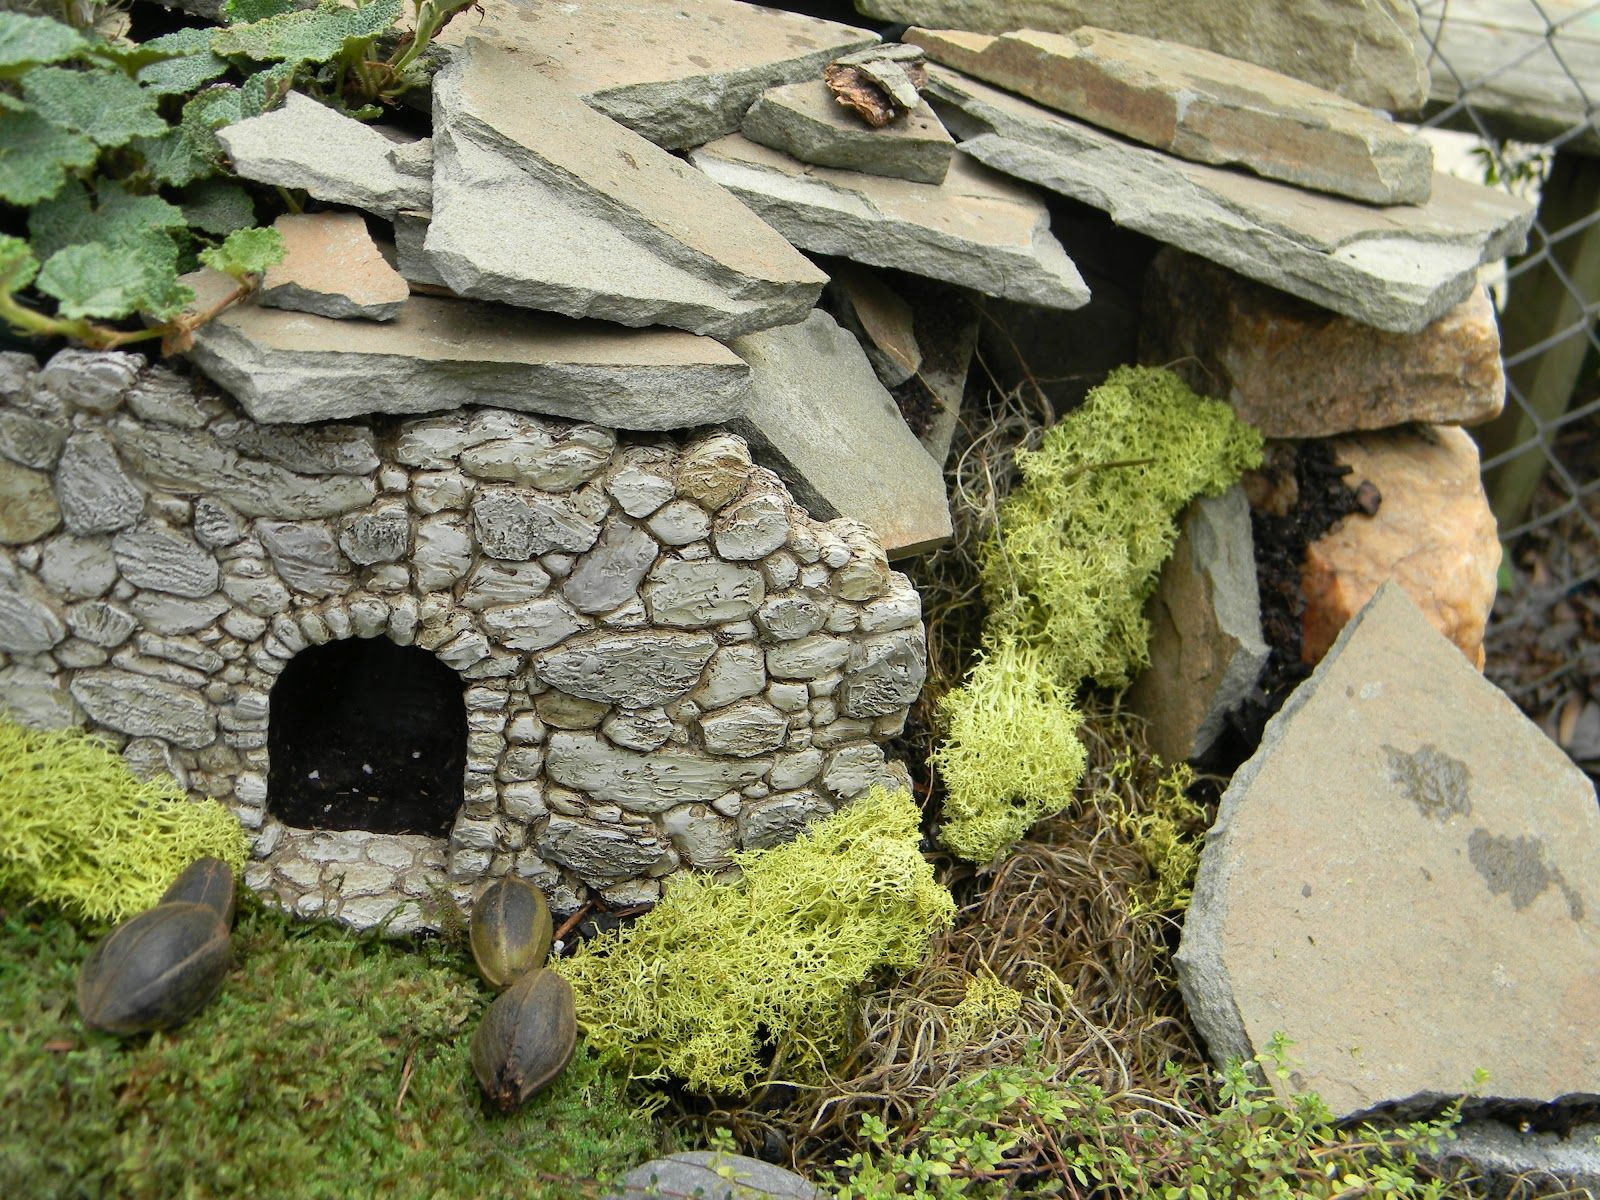 House on the rock flickr photo sharing - Fairy House Craft Another Fairy House Flickr Photo Sharing Description From Pinterest